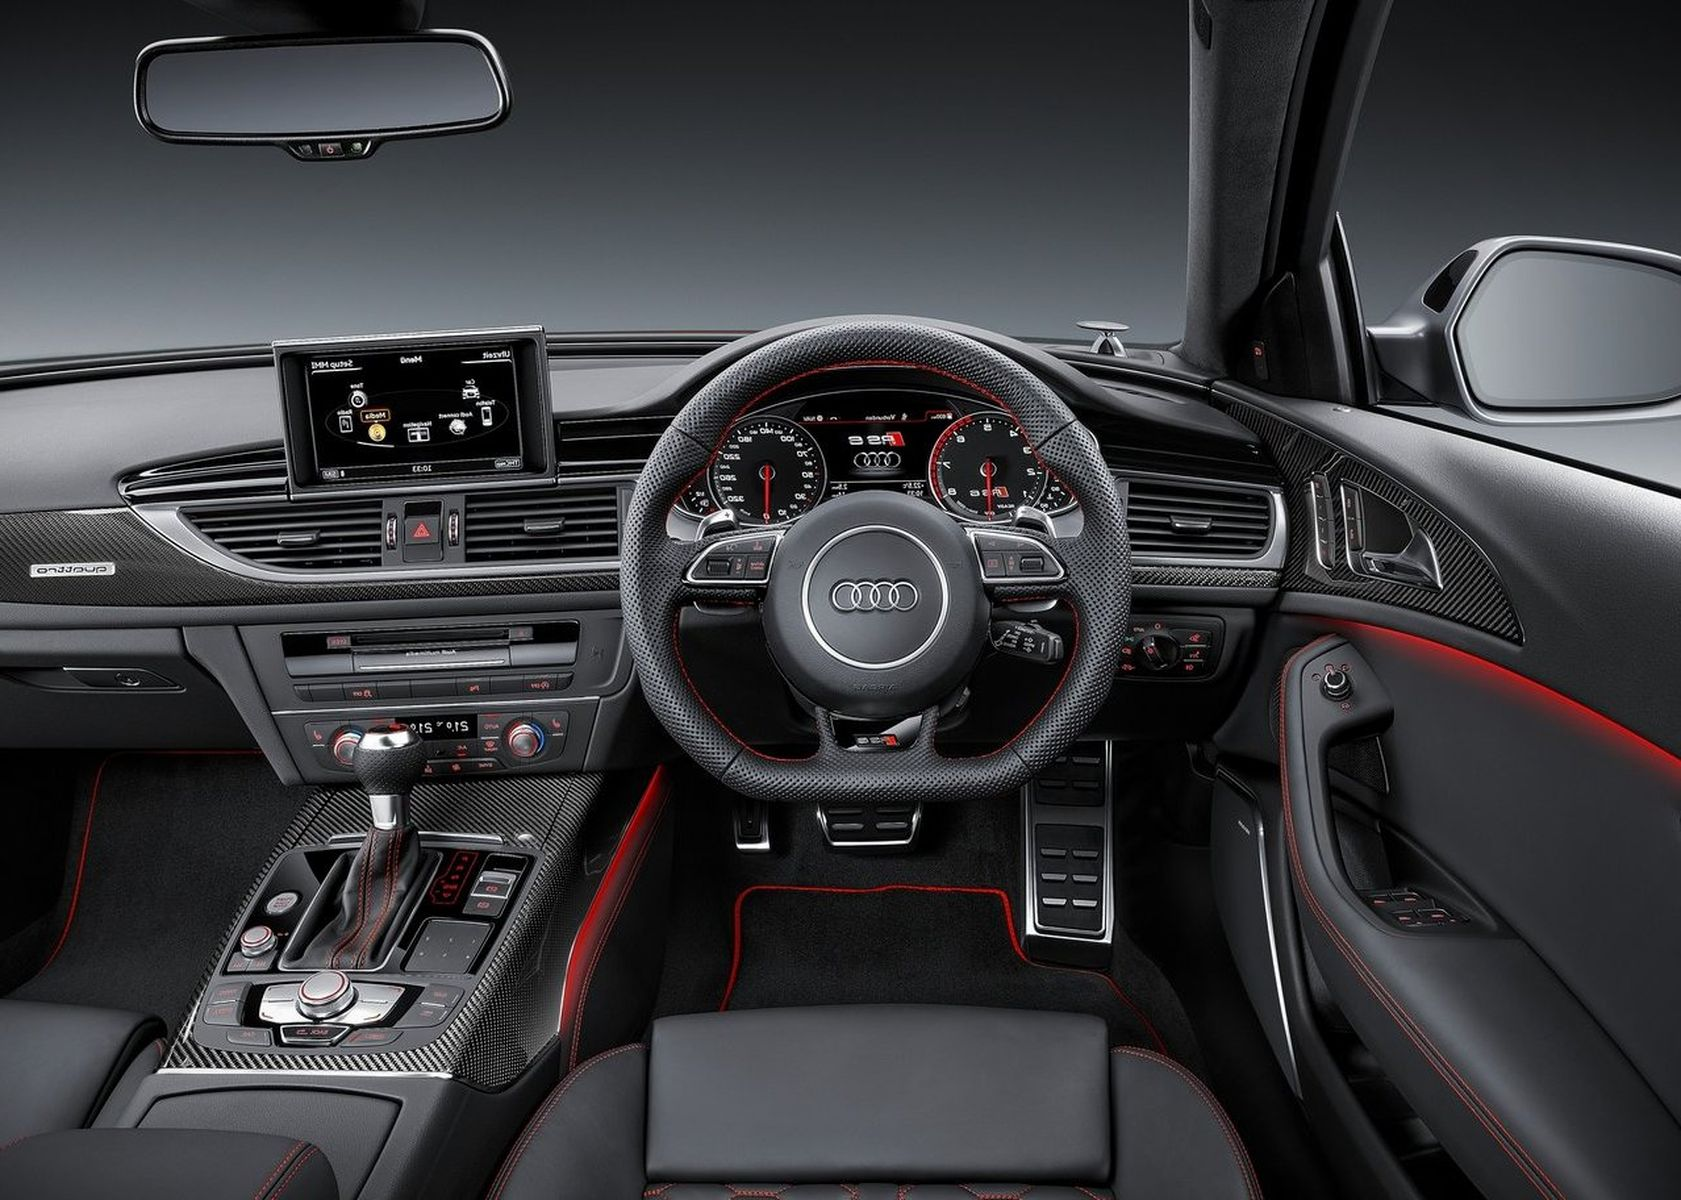 Audi RS Avant Interior Pictures New SUV Price - Audi rs6 2018